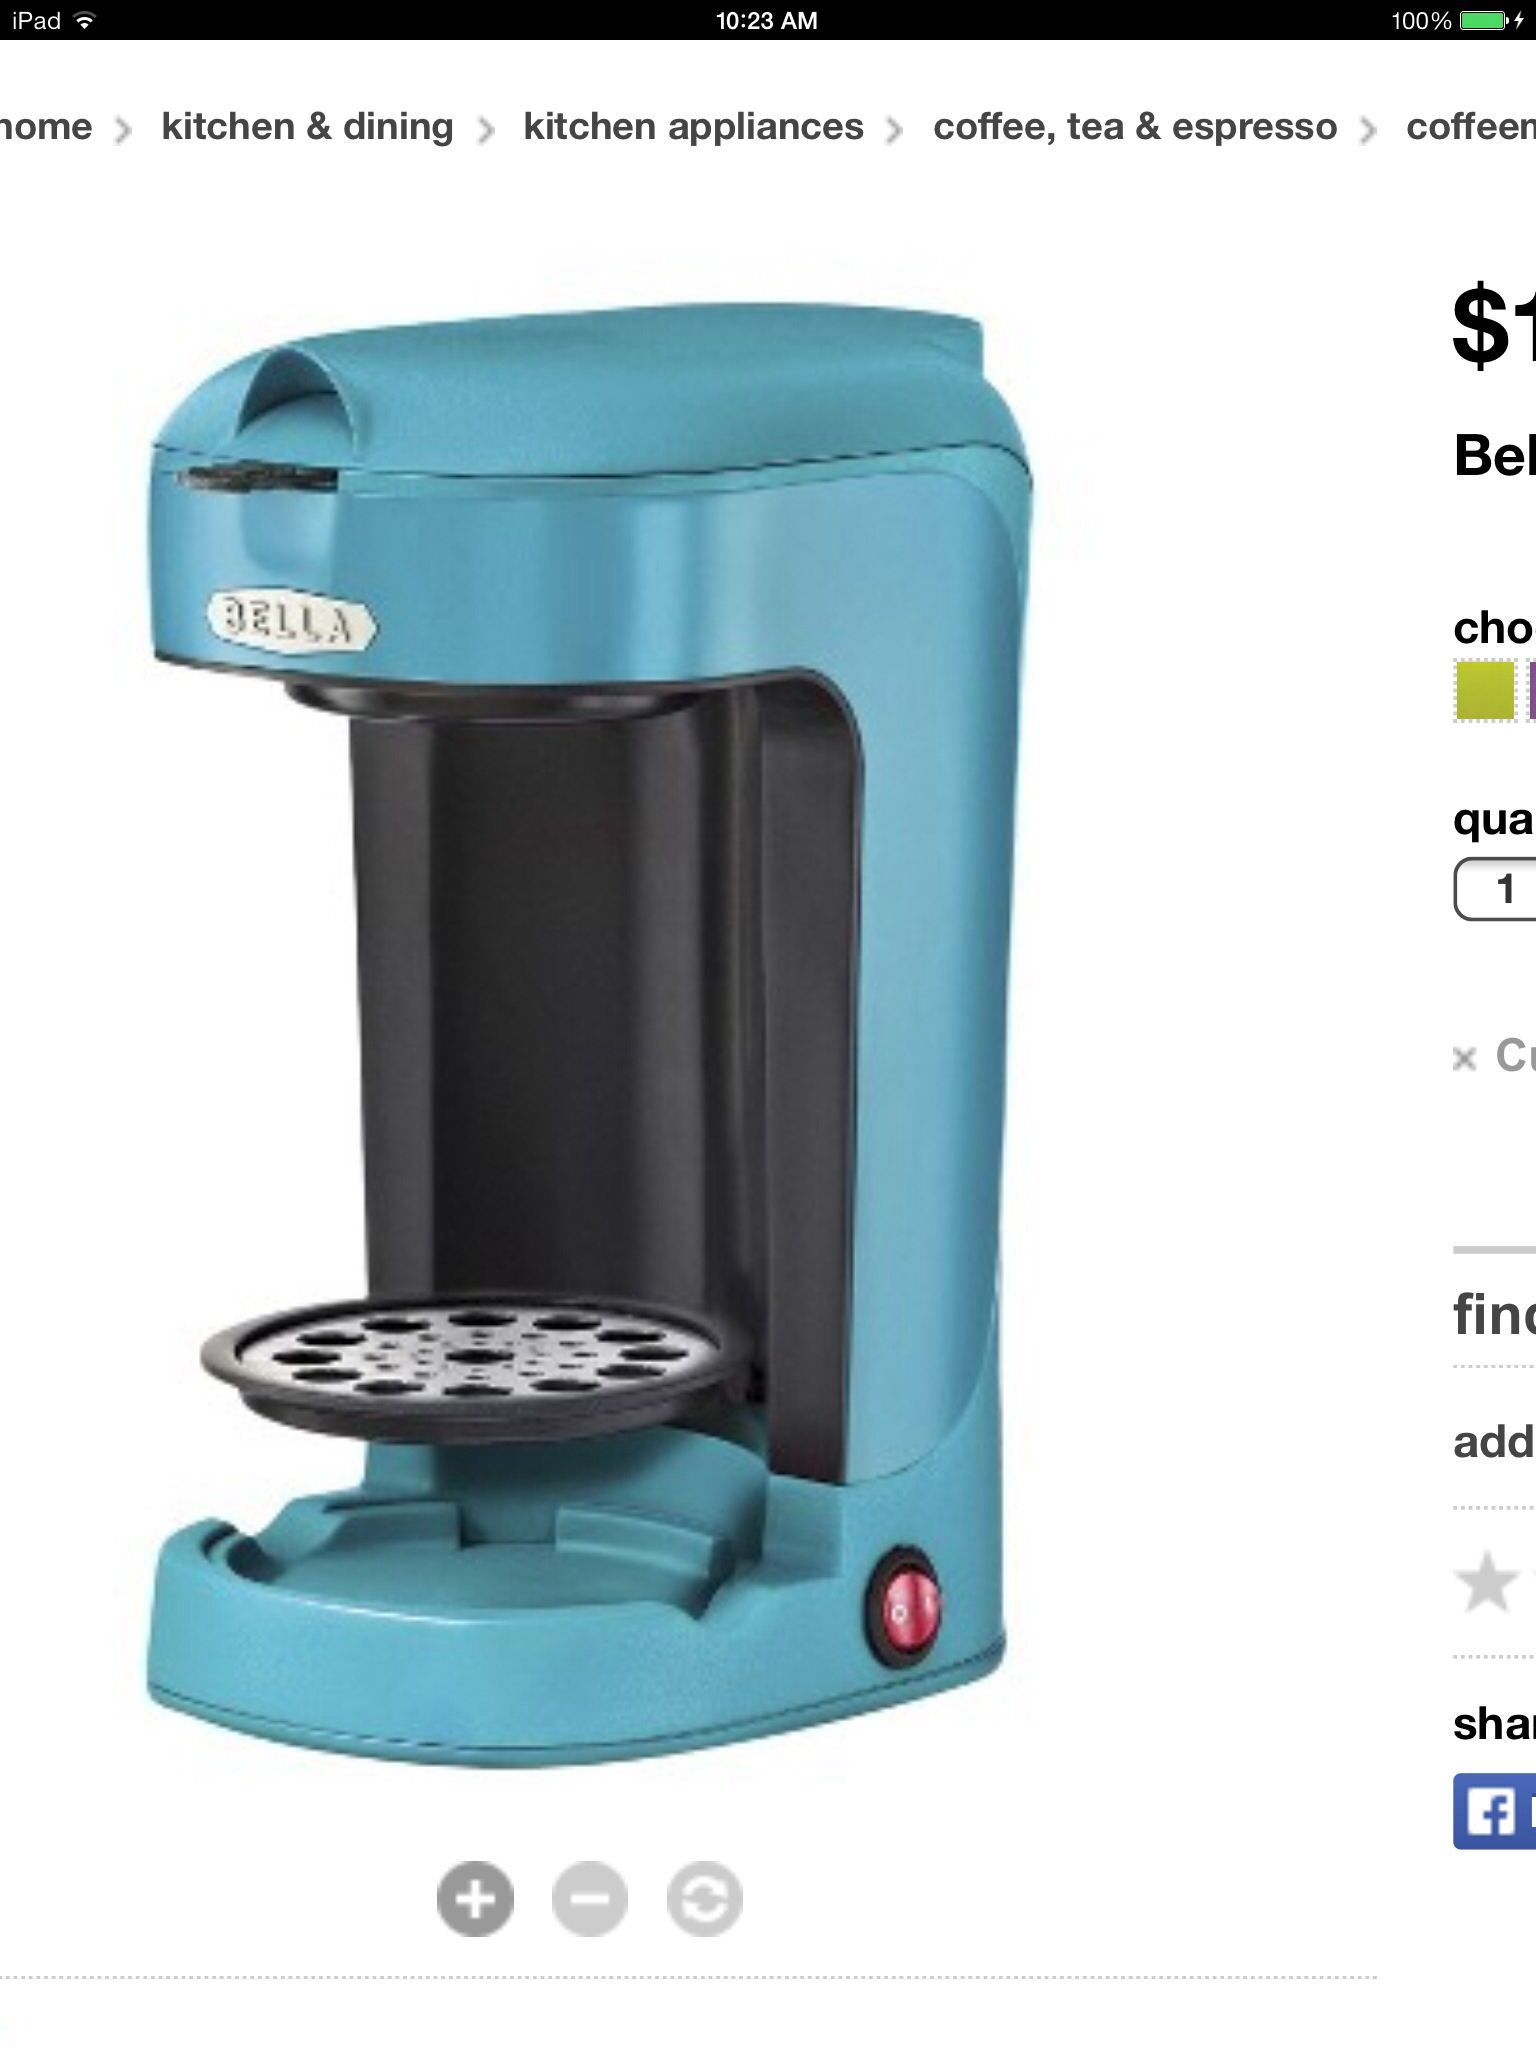 Bella single cup coffee maker, comes in different colors